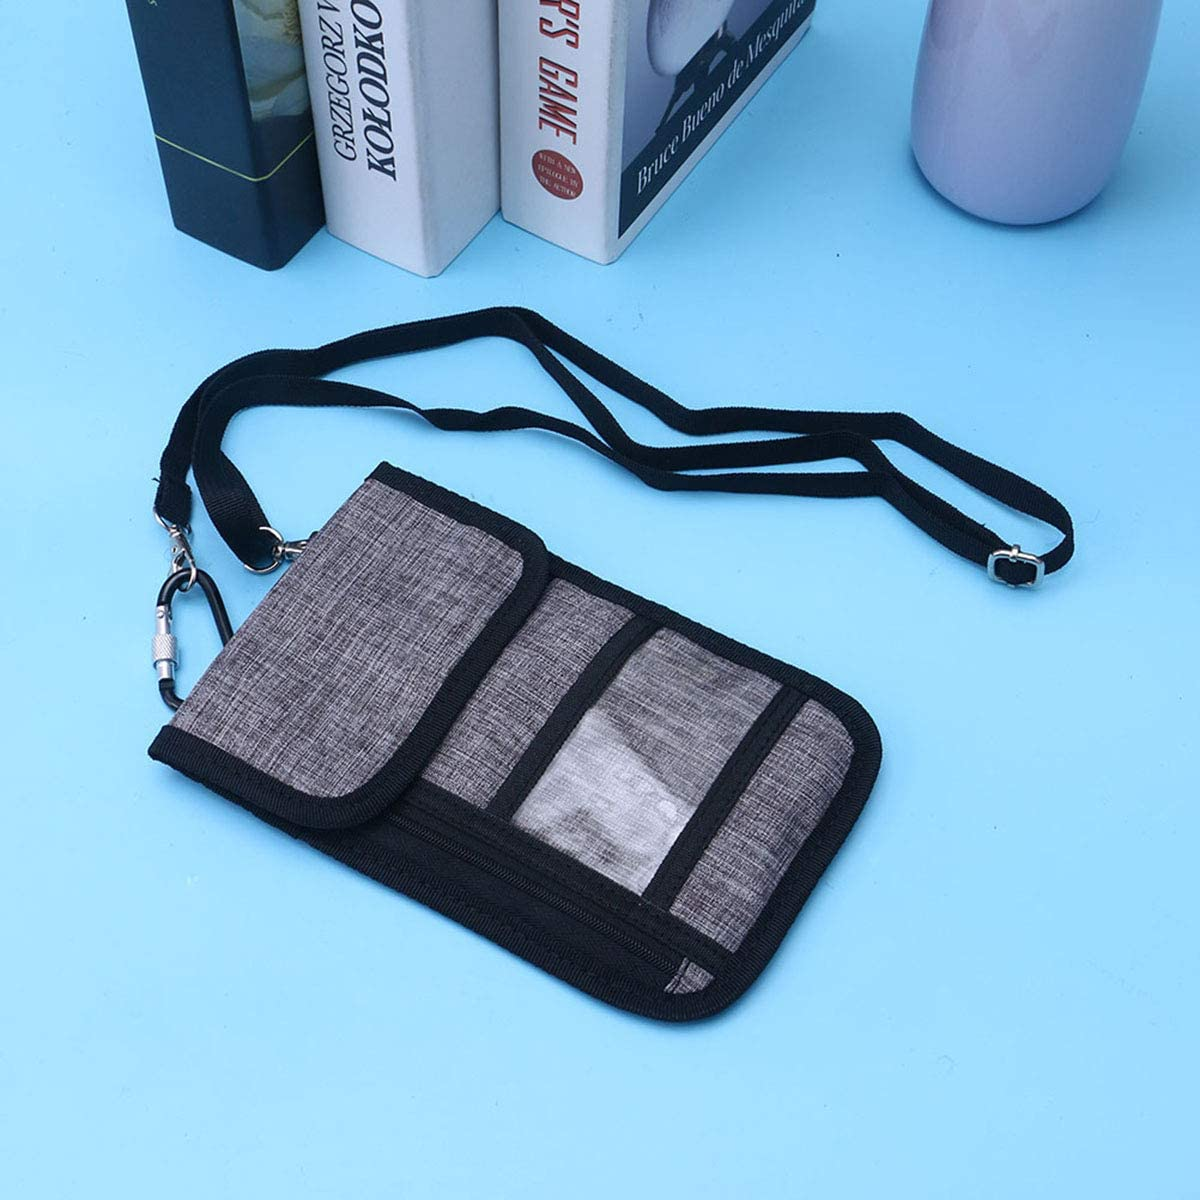 FENICAL Passport Wallet Holder Neck RFID Blocking Travel Bag Money Holder for Women Men Black